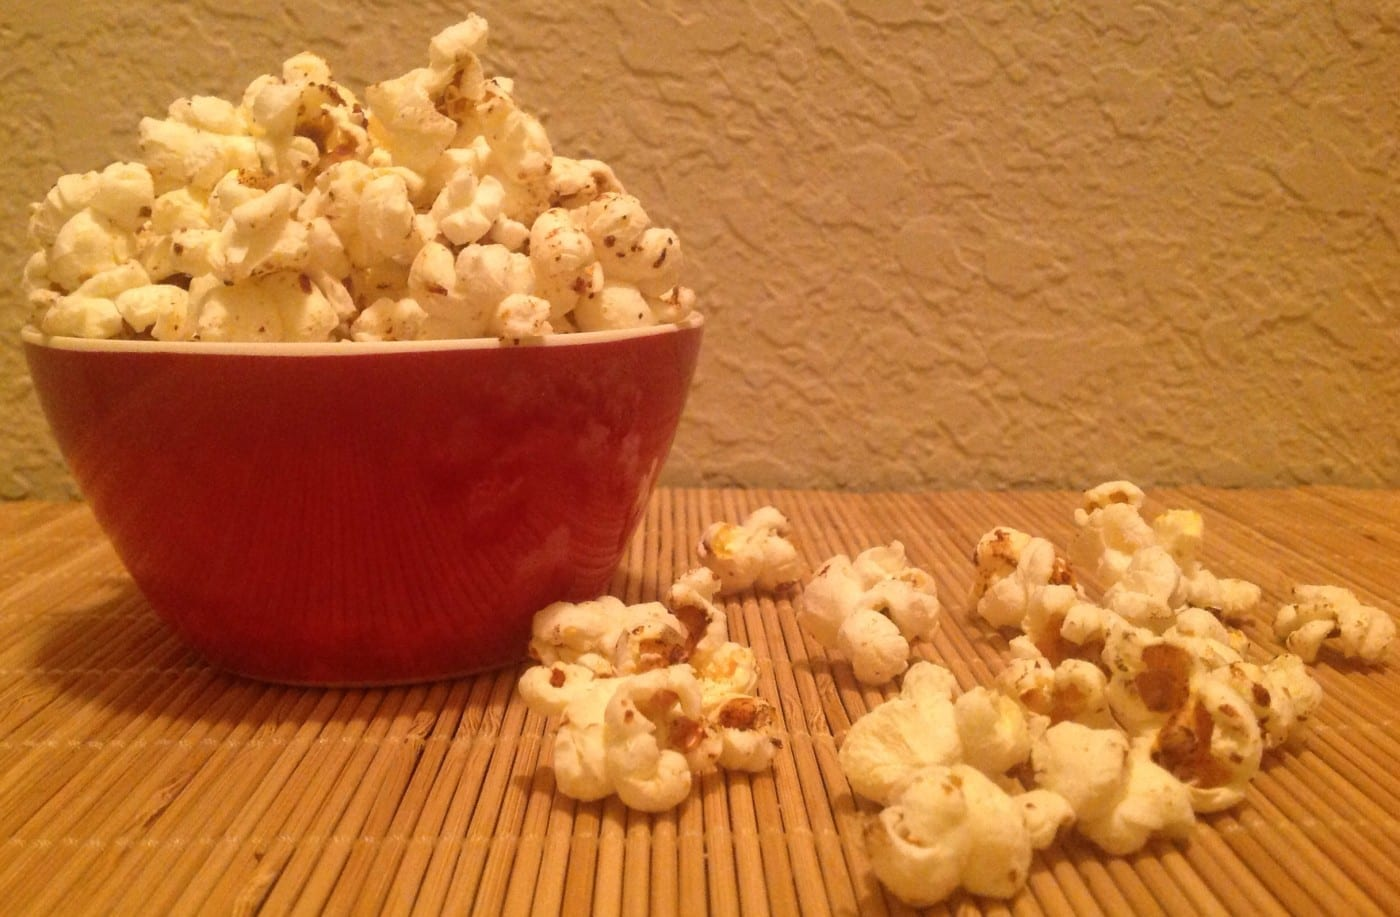 Tomato flavored gourmet kettle corn popcorn in a red bowl on a bamboo mat